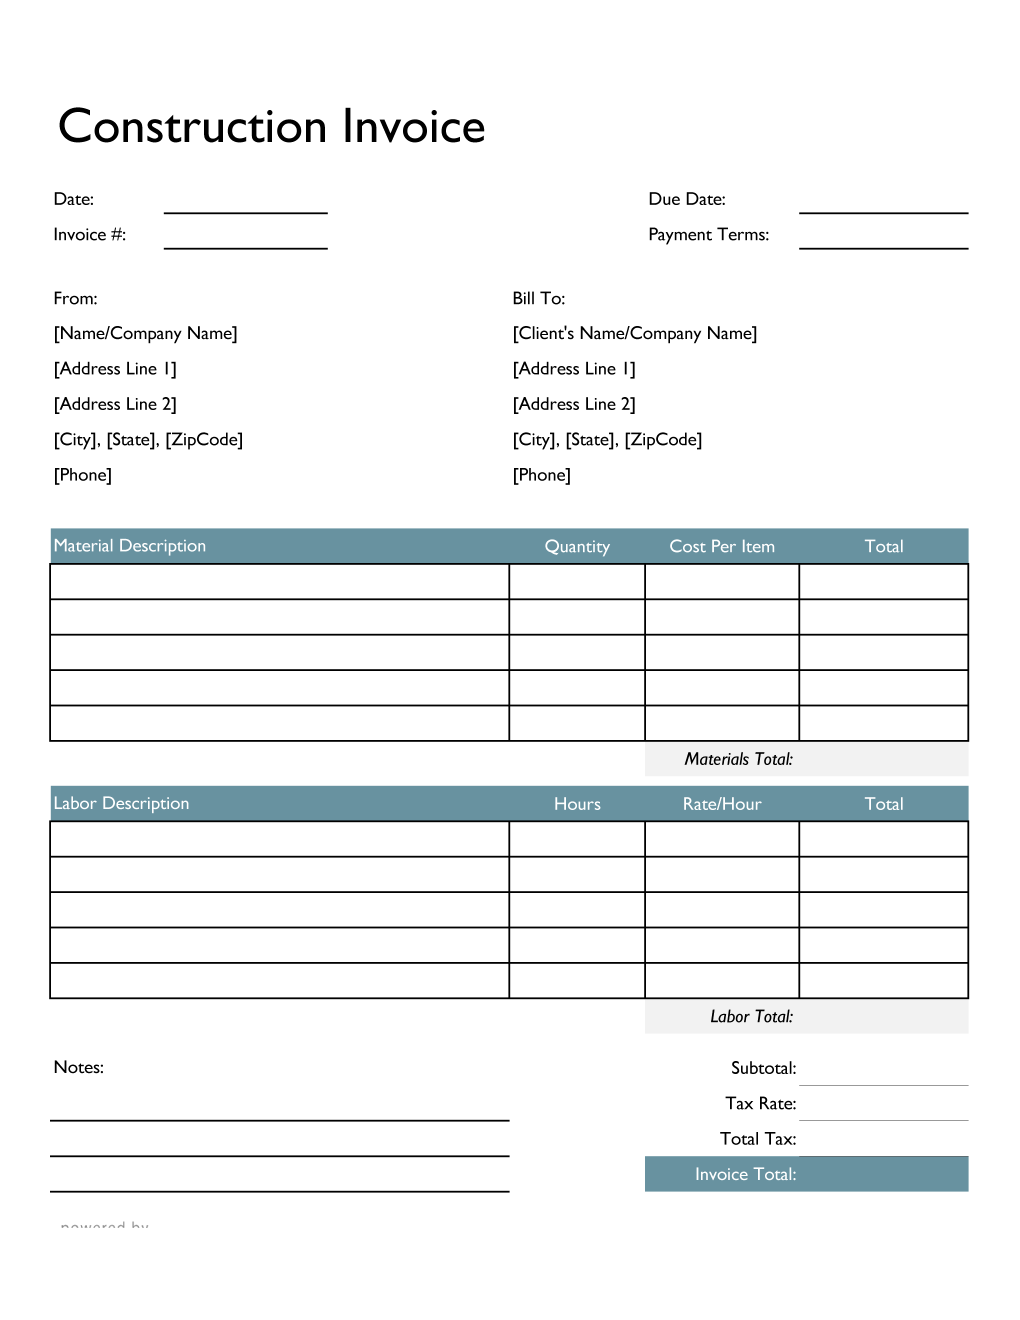 Construction Invoice Template In Excel Colorful